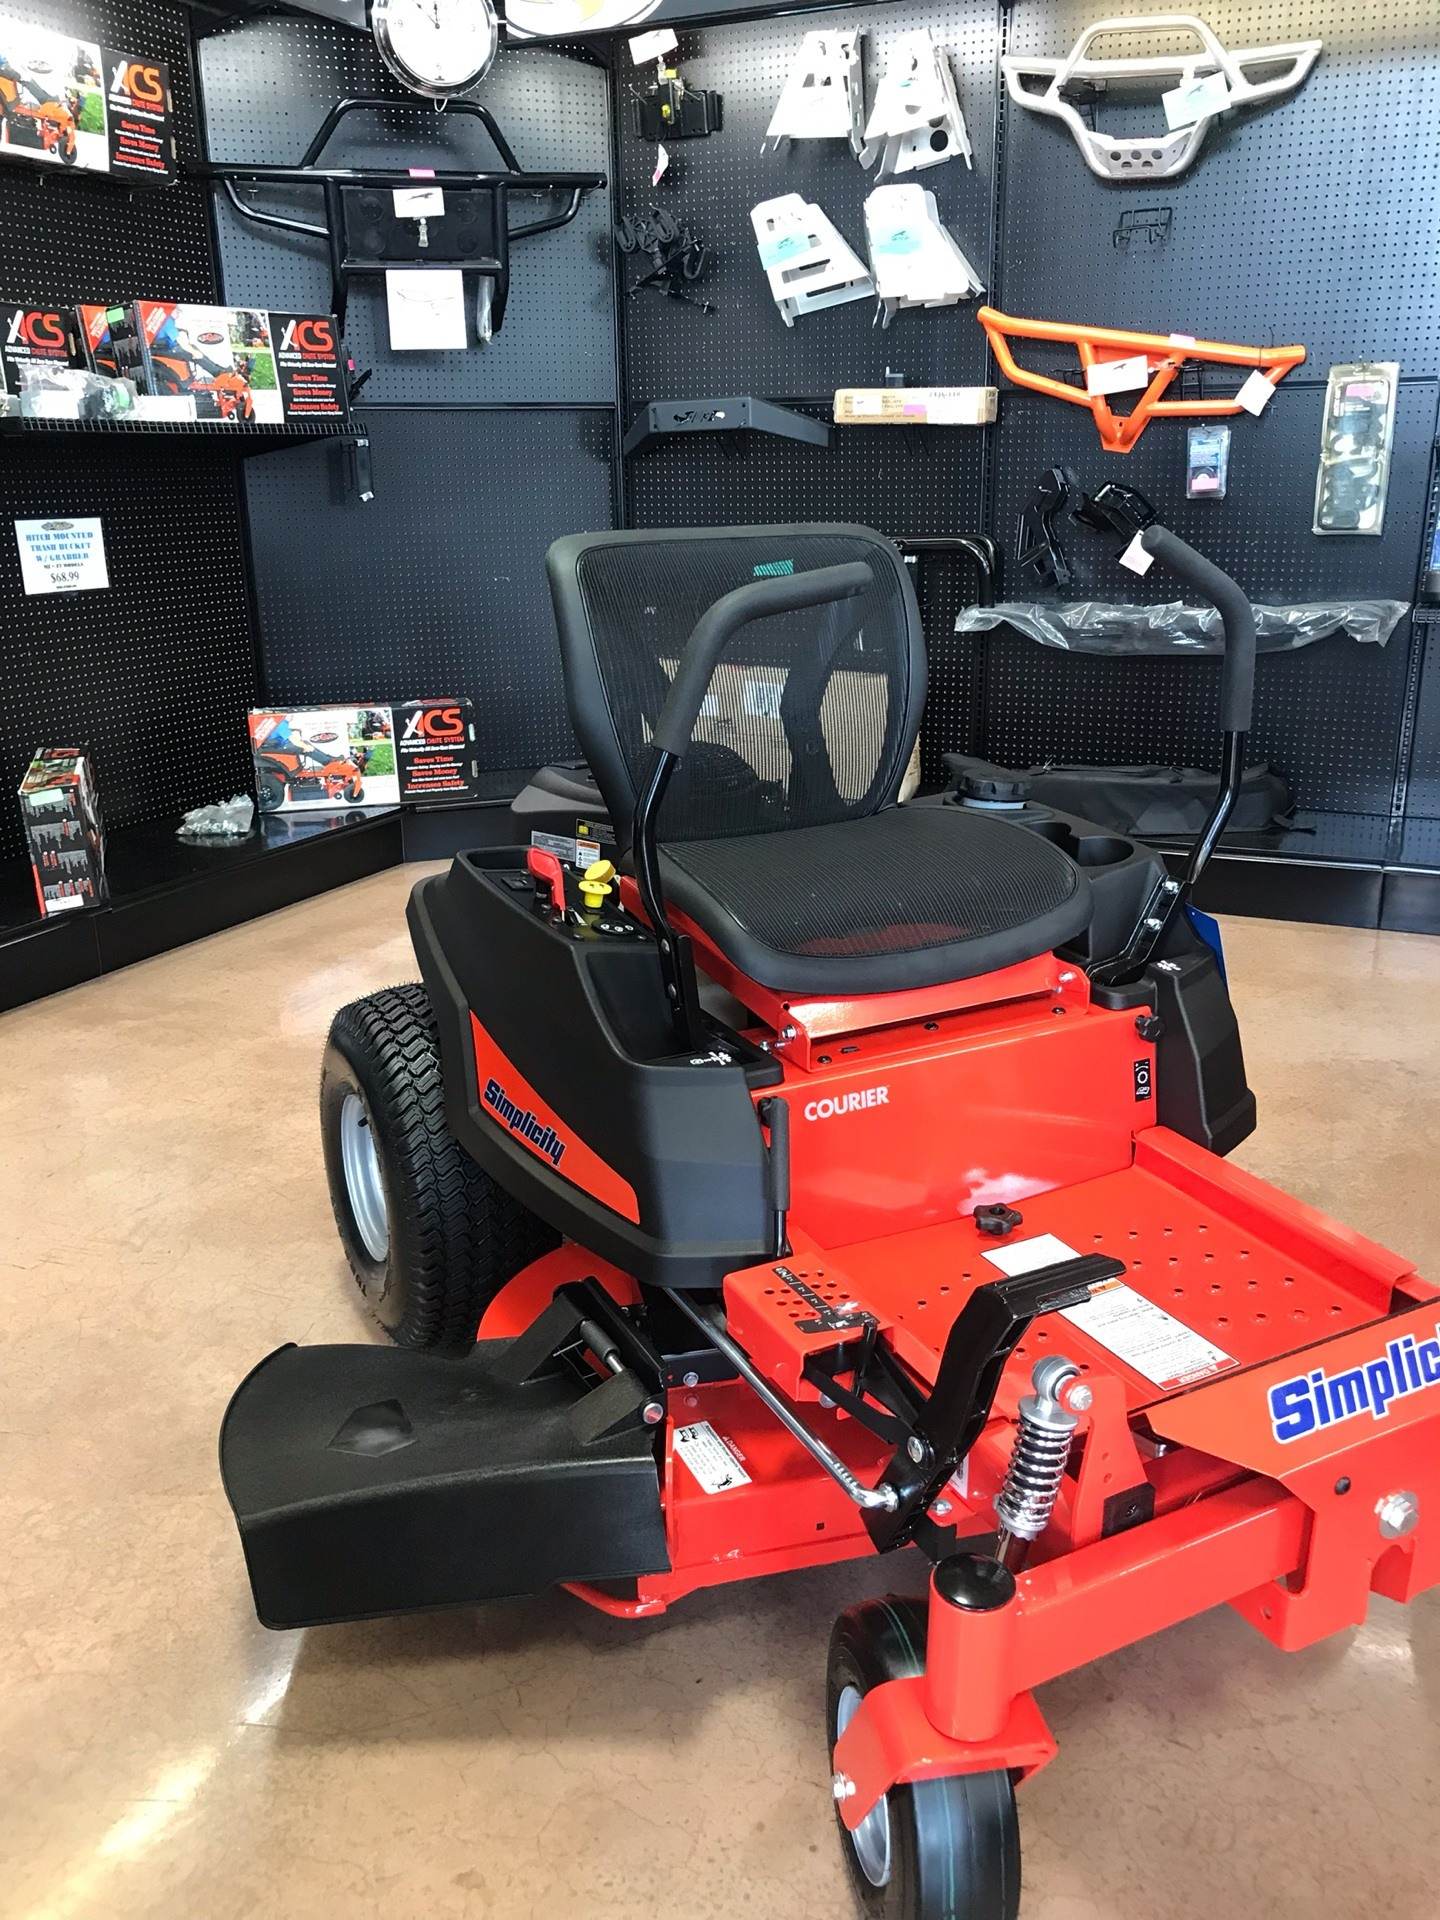 2019 Simplicity Courier 42 in. Kawasaki 21.5 hp in Evansville, Indiana - Photo 2